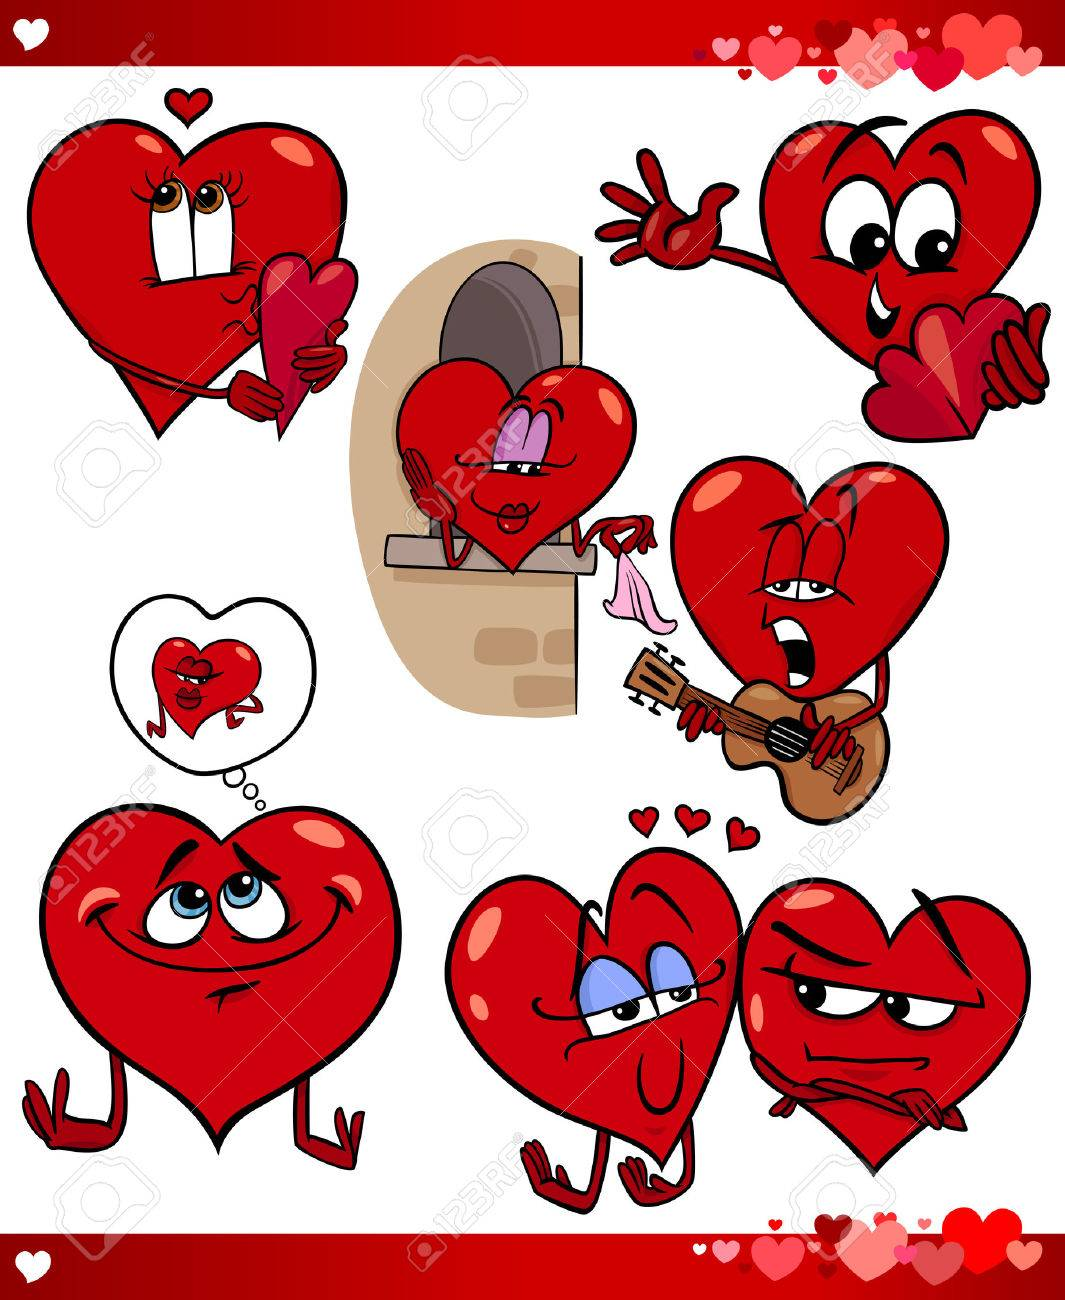 cartoon illustration of cute valentines day and love themes